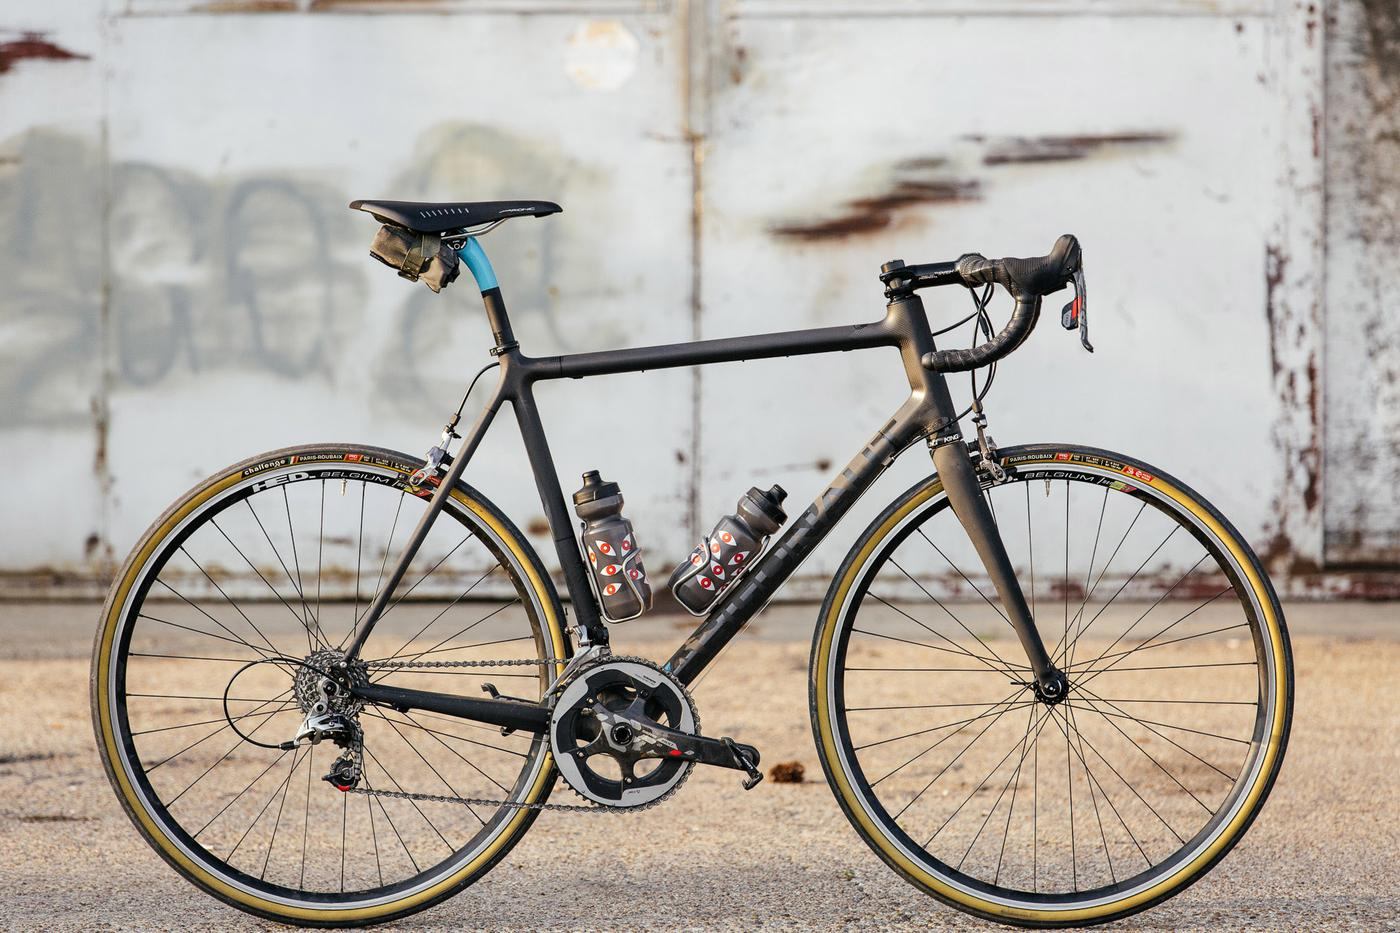 My Argonaut Cycles 2.0 Road with SRAM Red 22